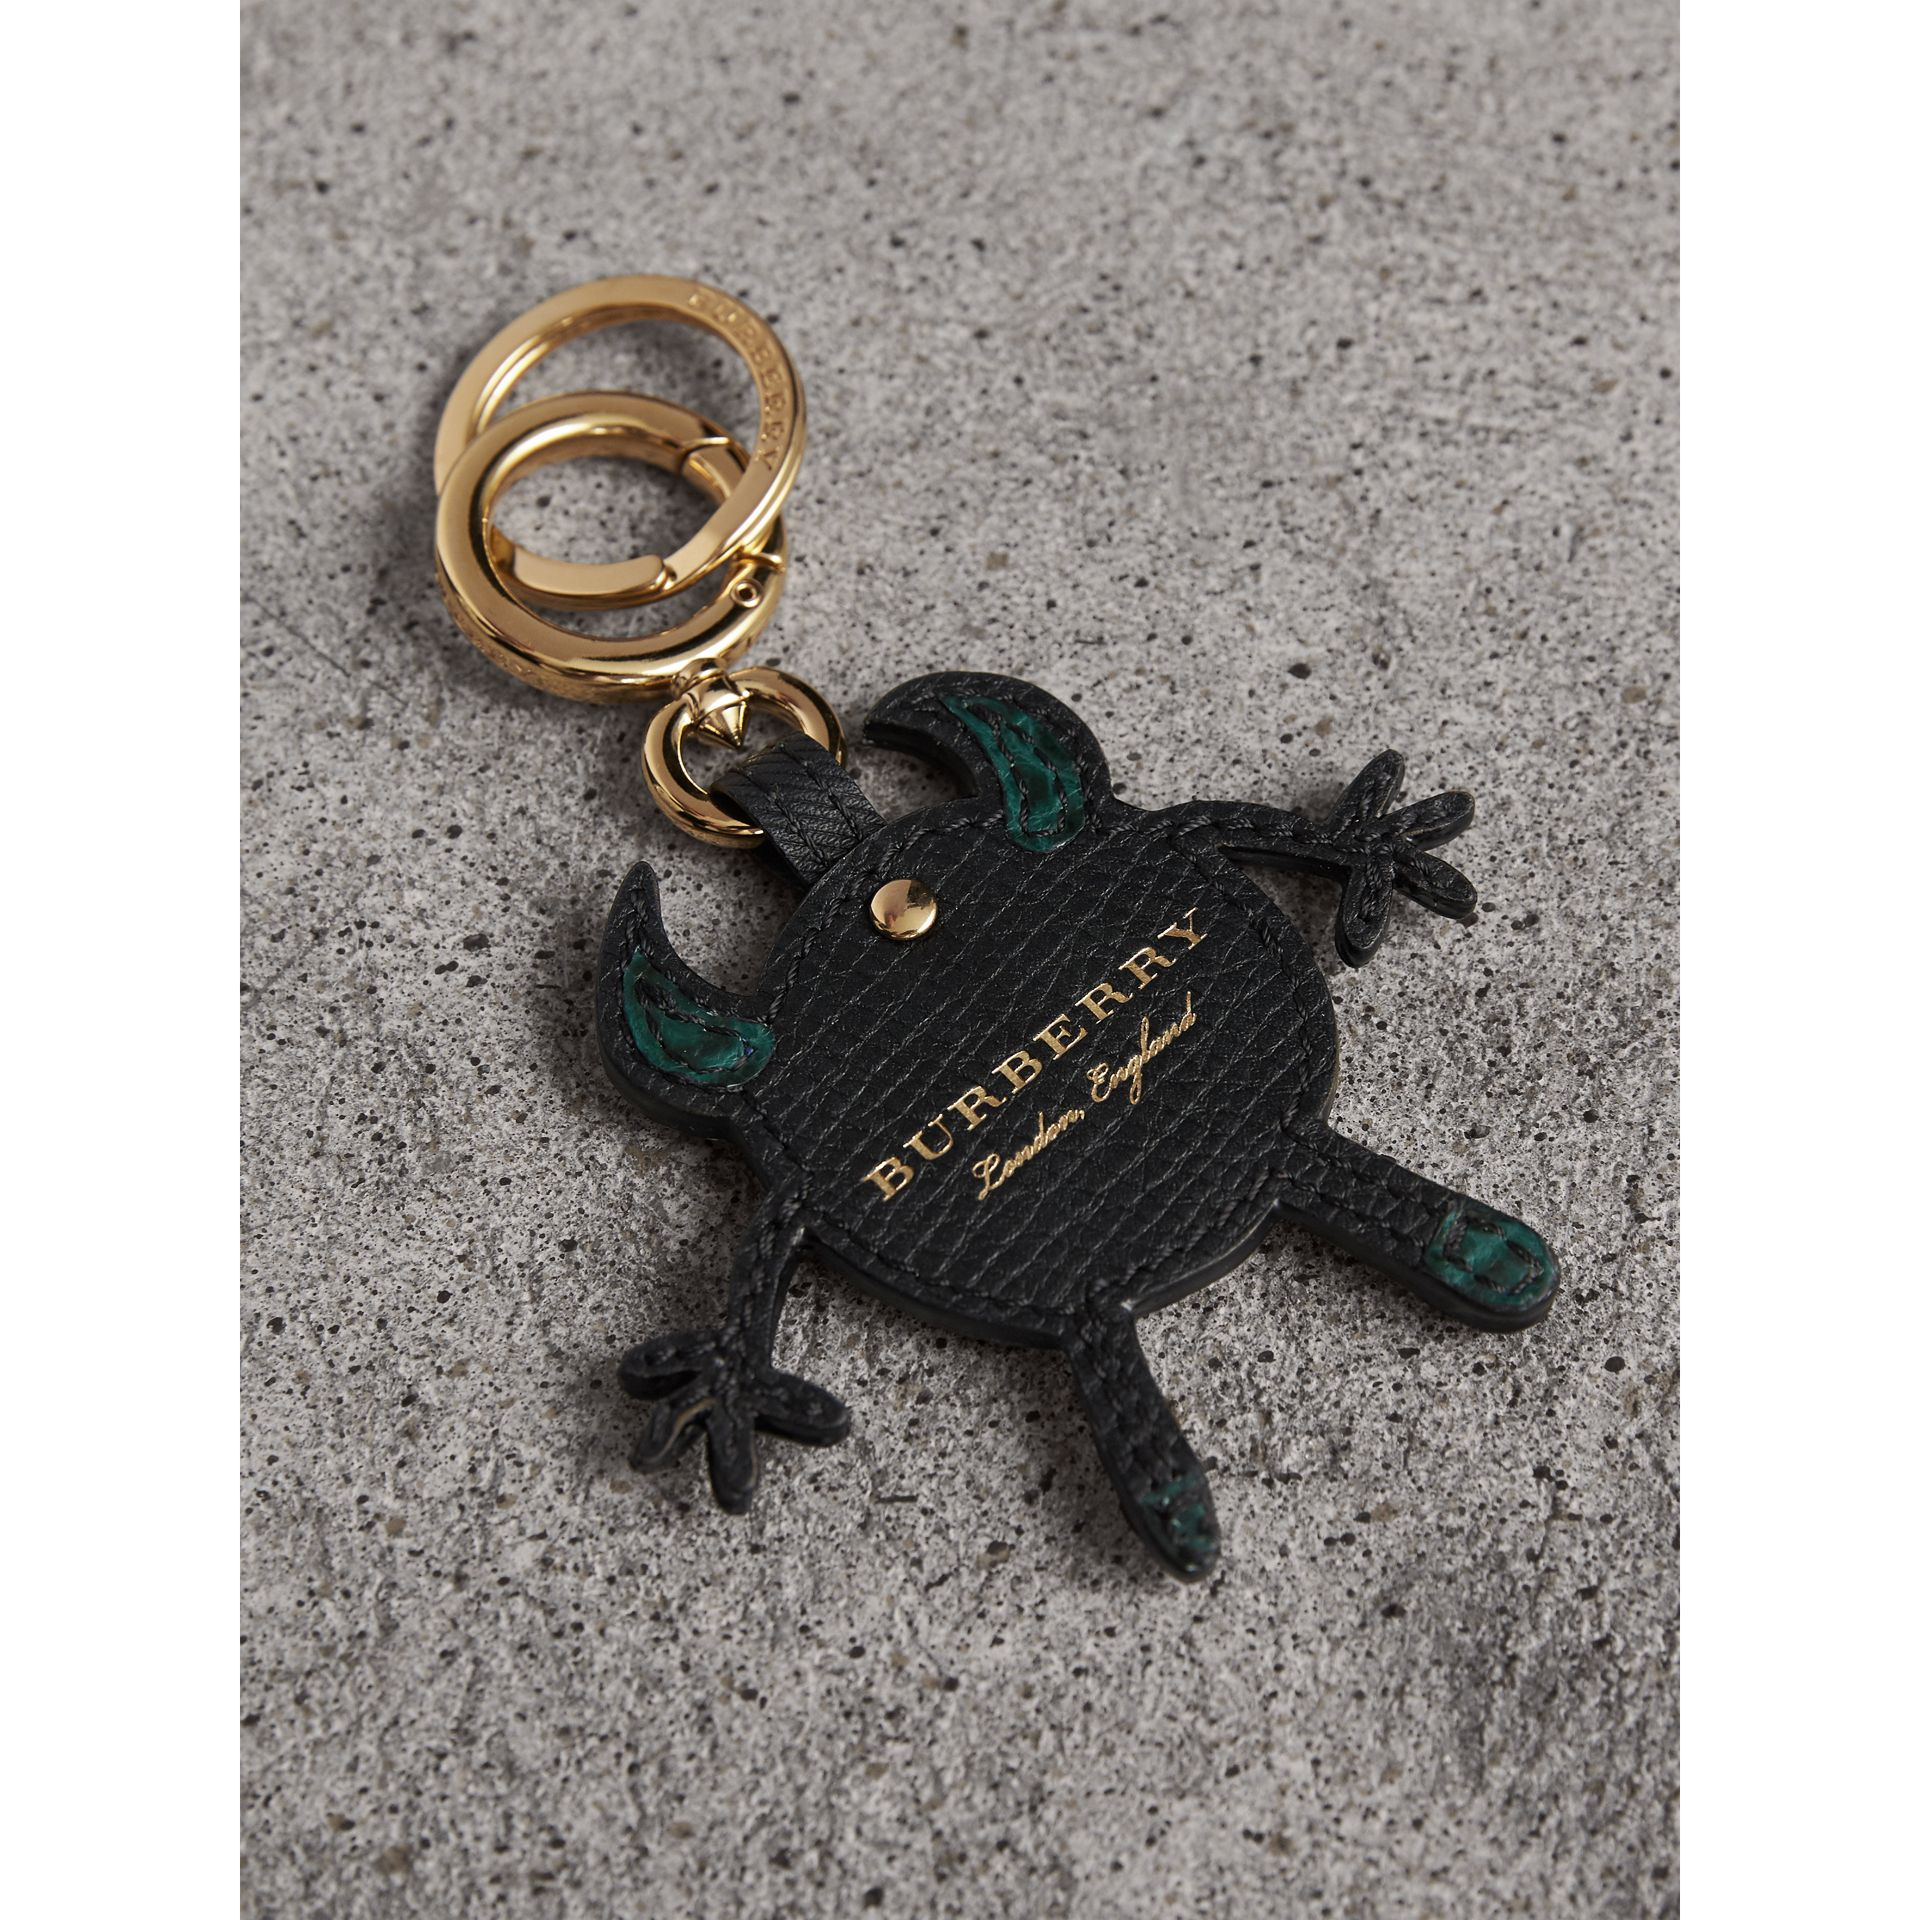 Creature Motif Leather Trim Key Ring in Black - Men | Burberry - gallery image 3